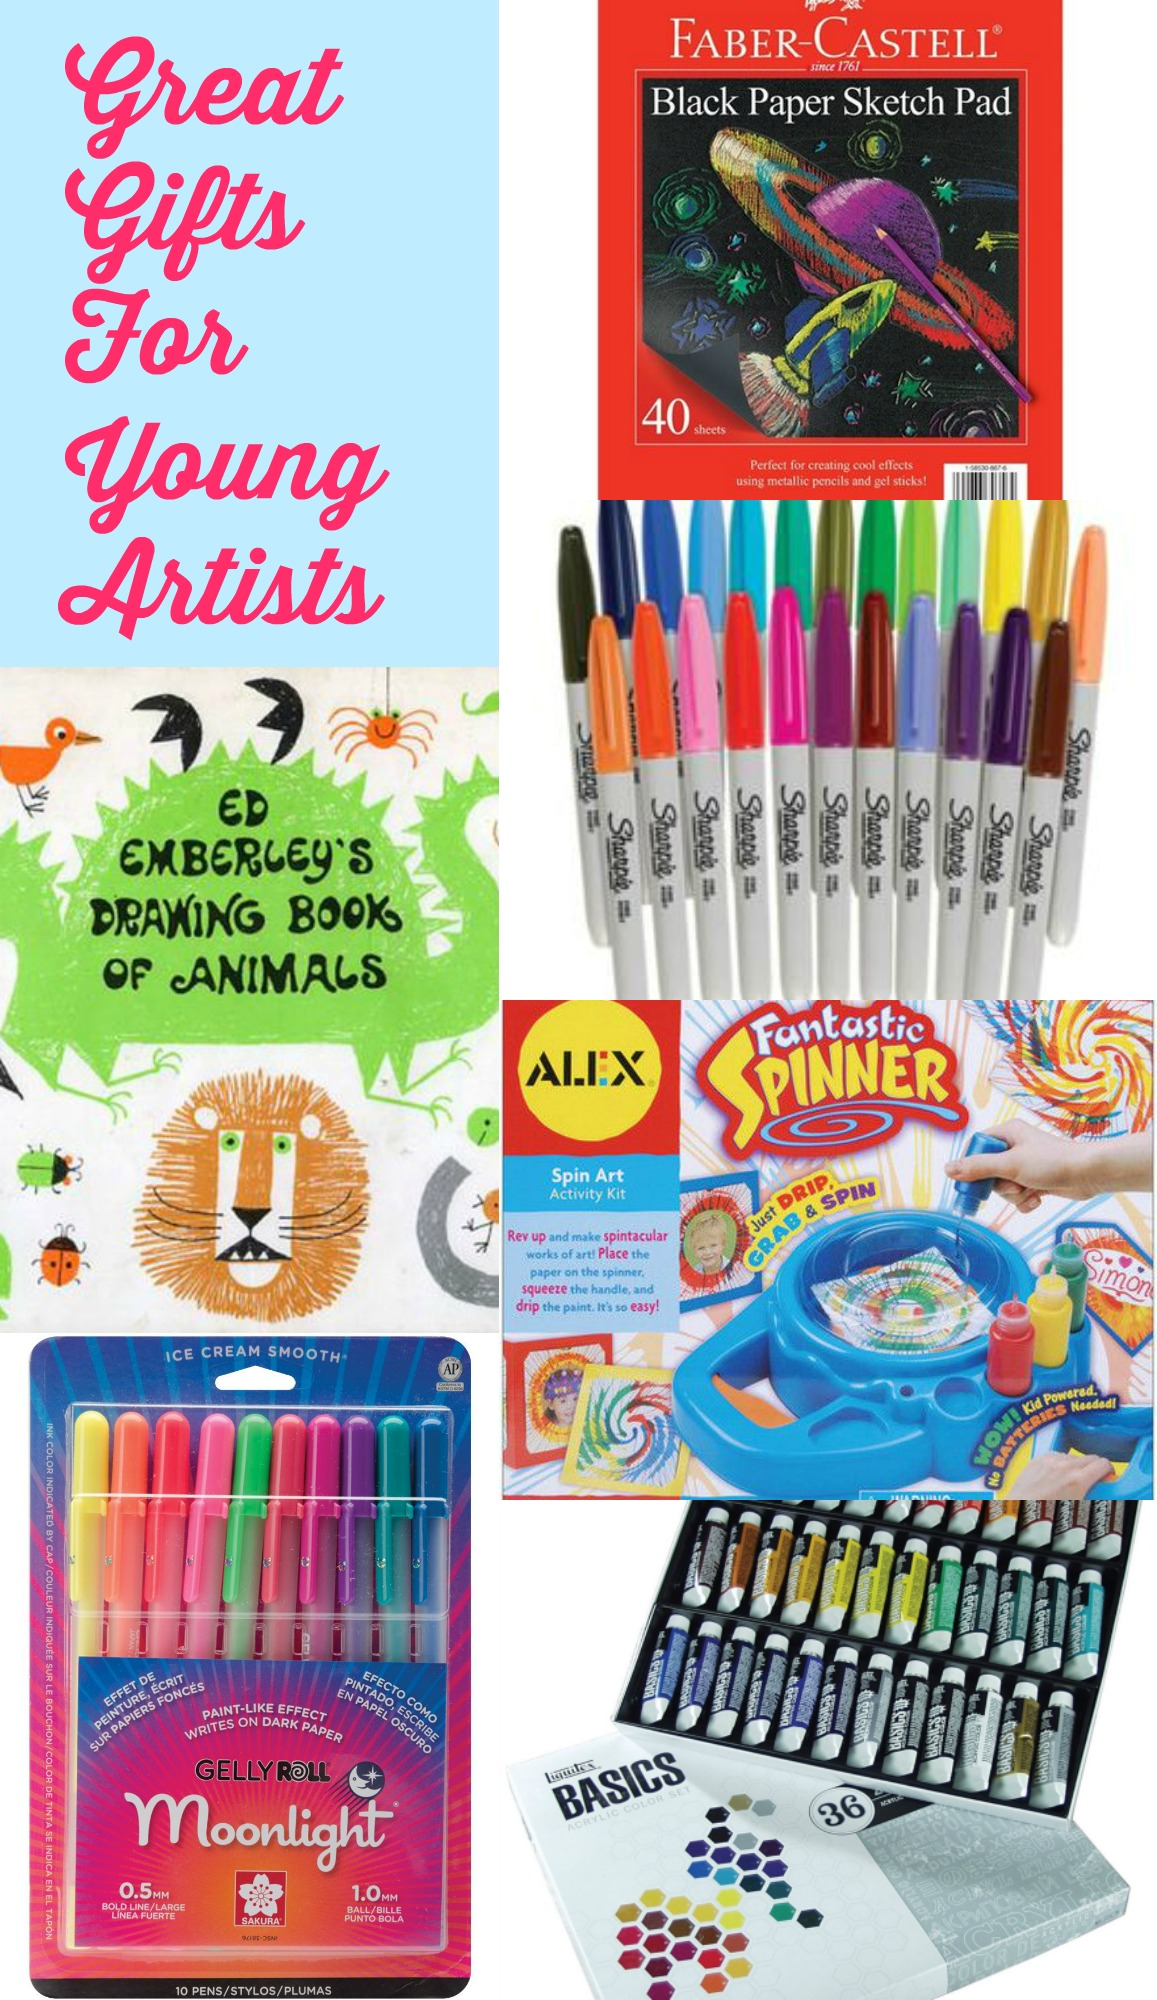 The Perfect Birthday Present Or Just Something To Pass Time On A Rainy Day There Are Lots Of Great Gift Options For Young Artists